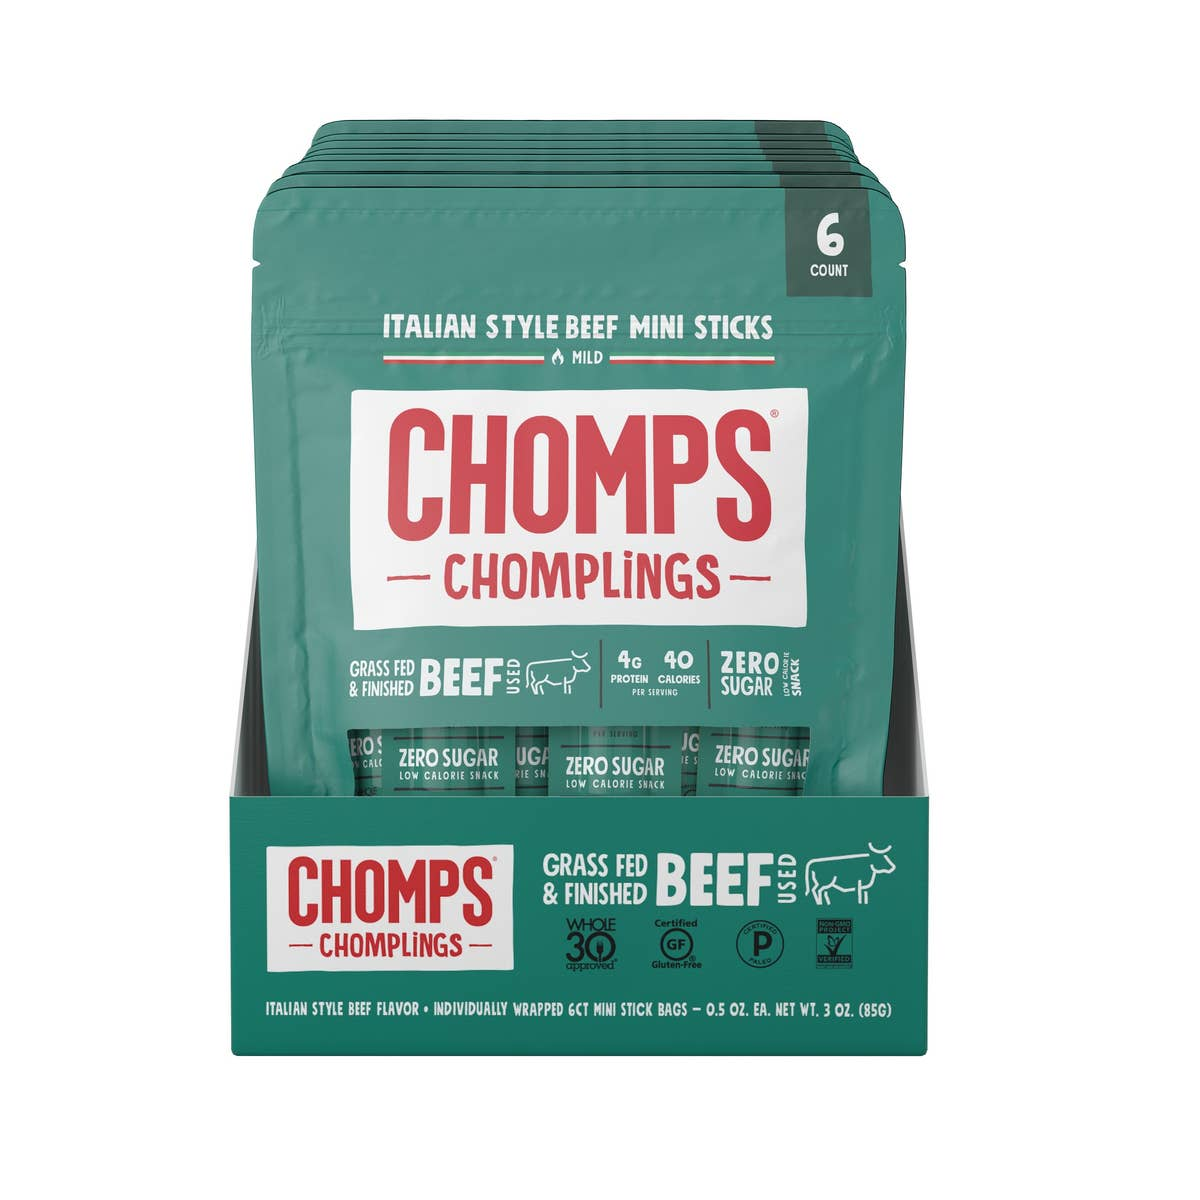 Chomps Grass Fed Italian Style Beef 6ct Chomplings - Pack of 10